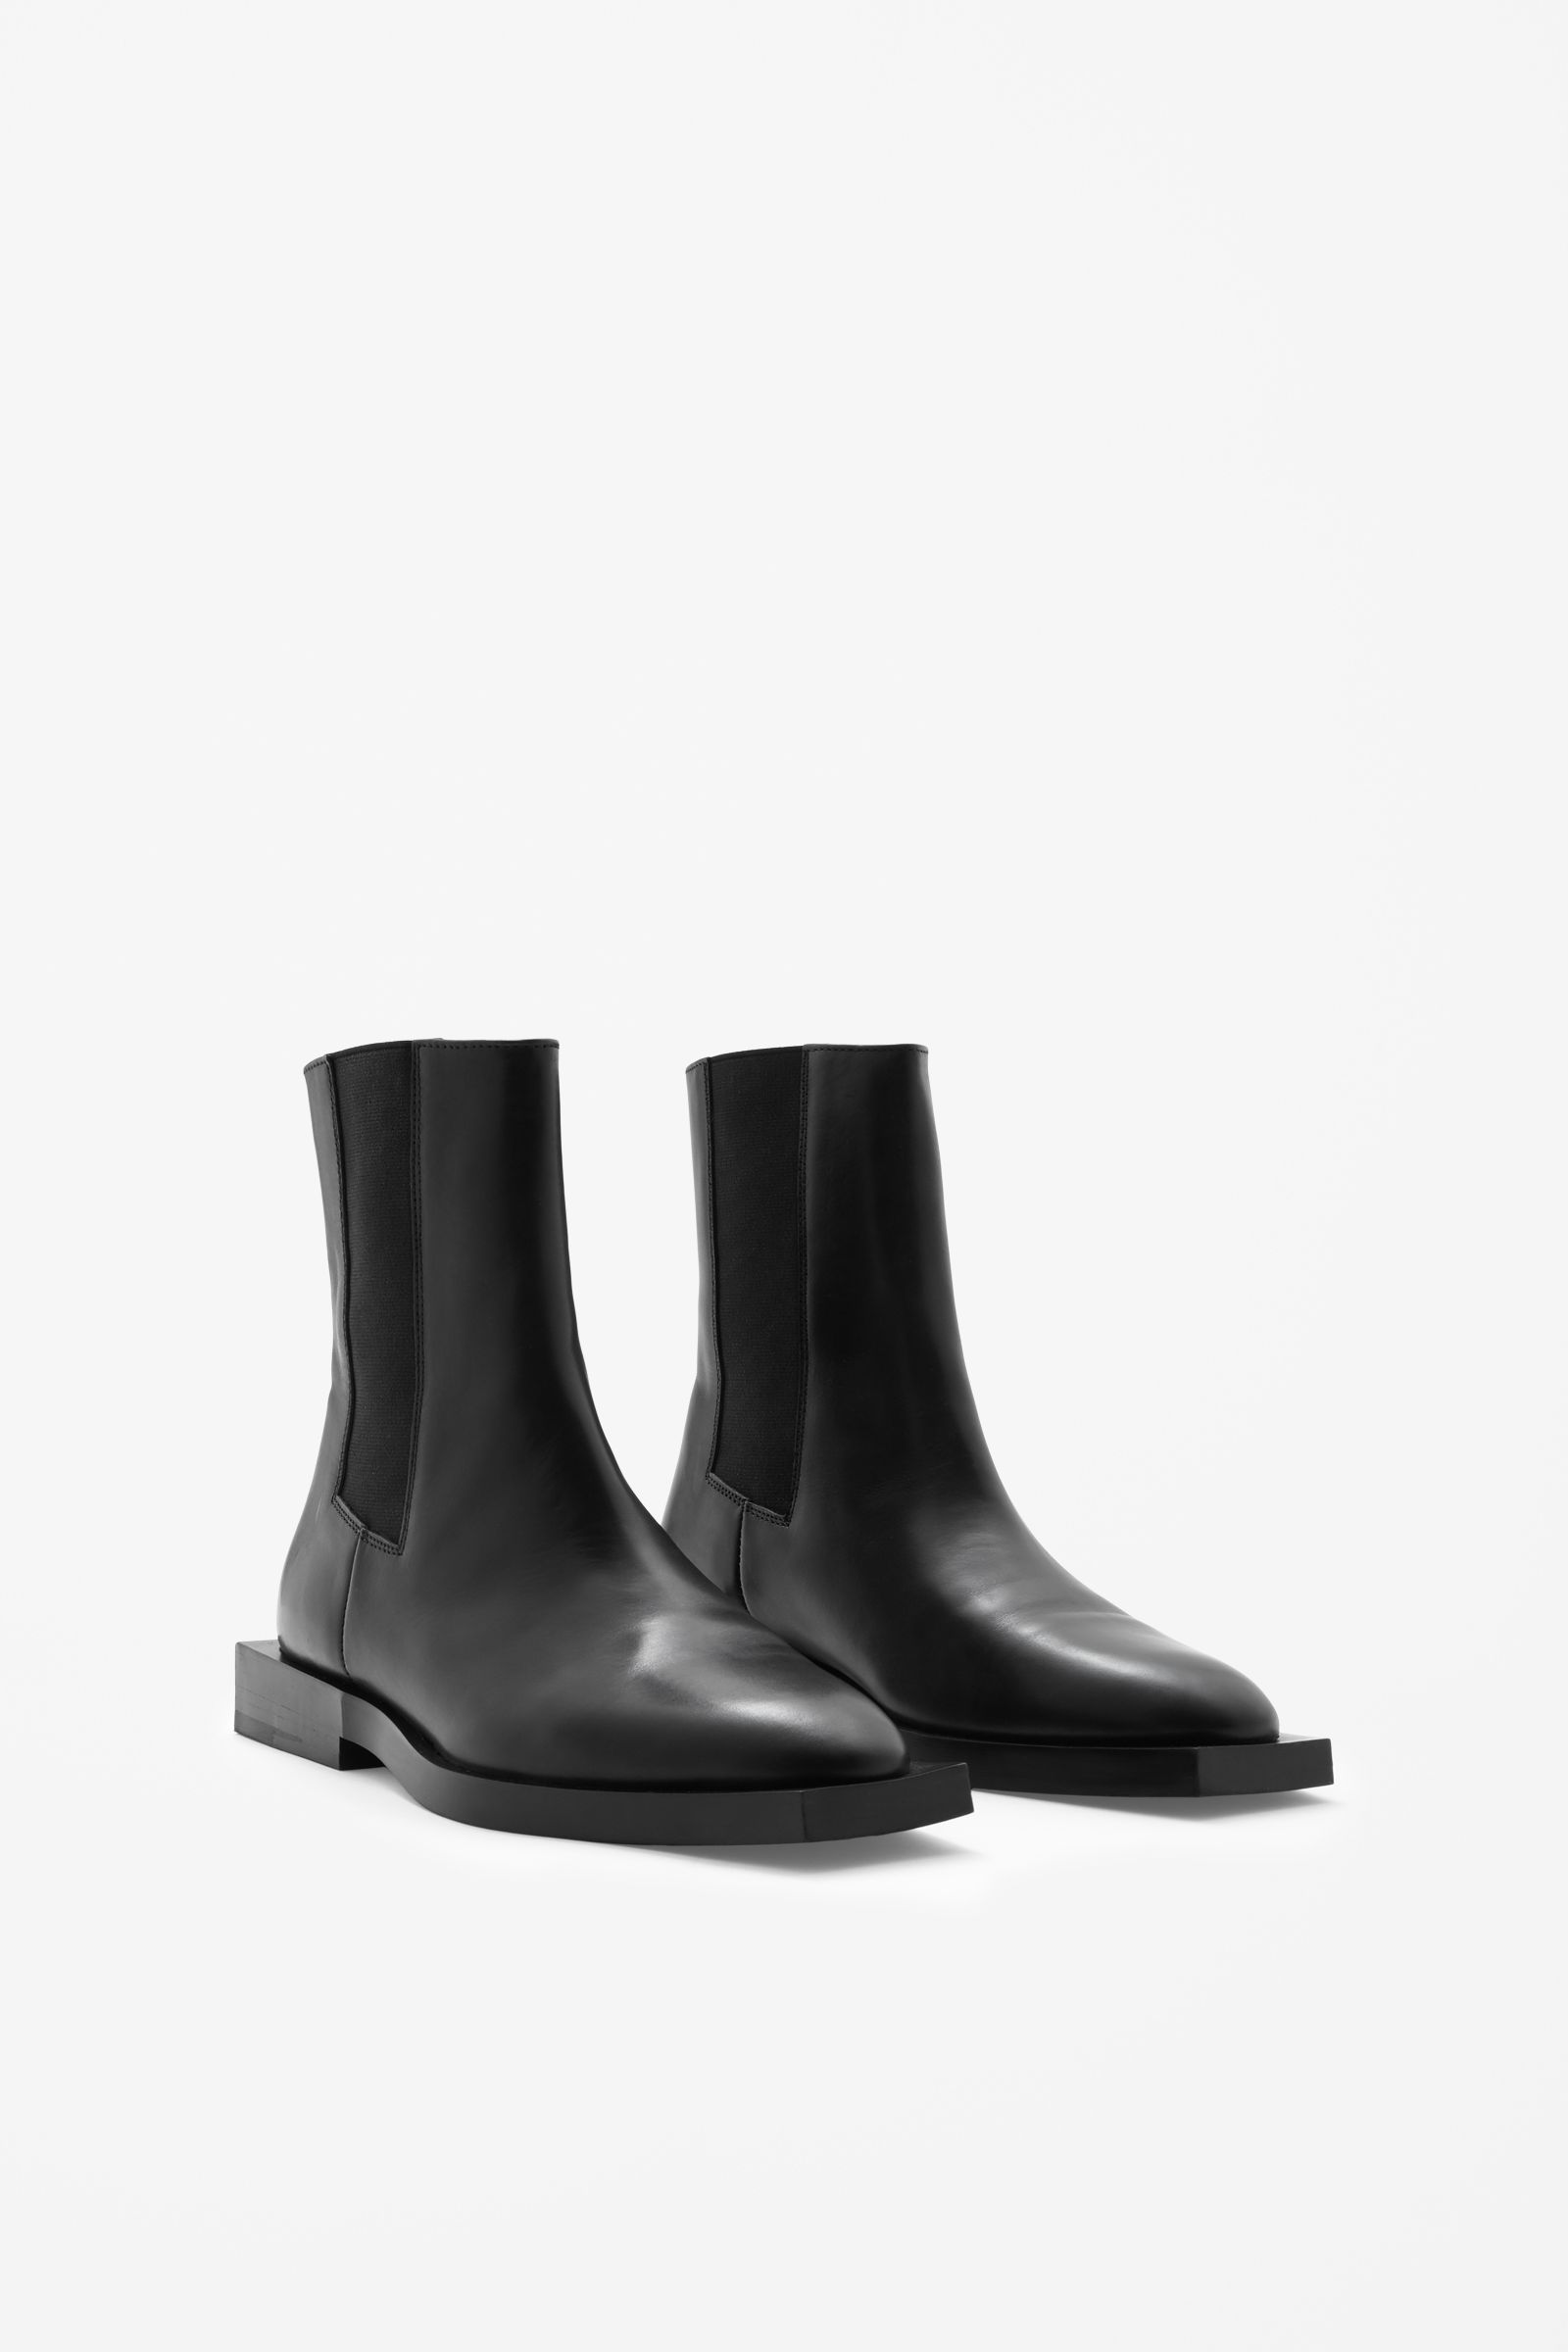 147c2b1fe7 COS Square sole Chelsea boots